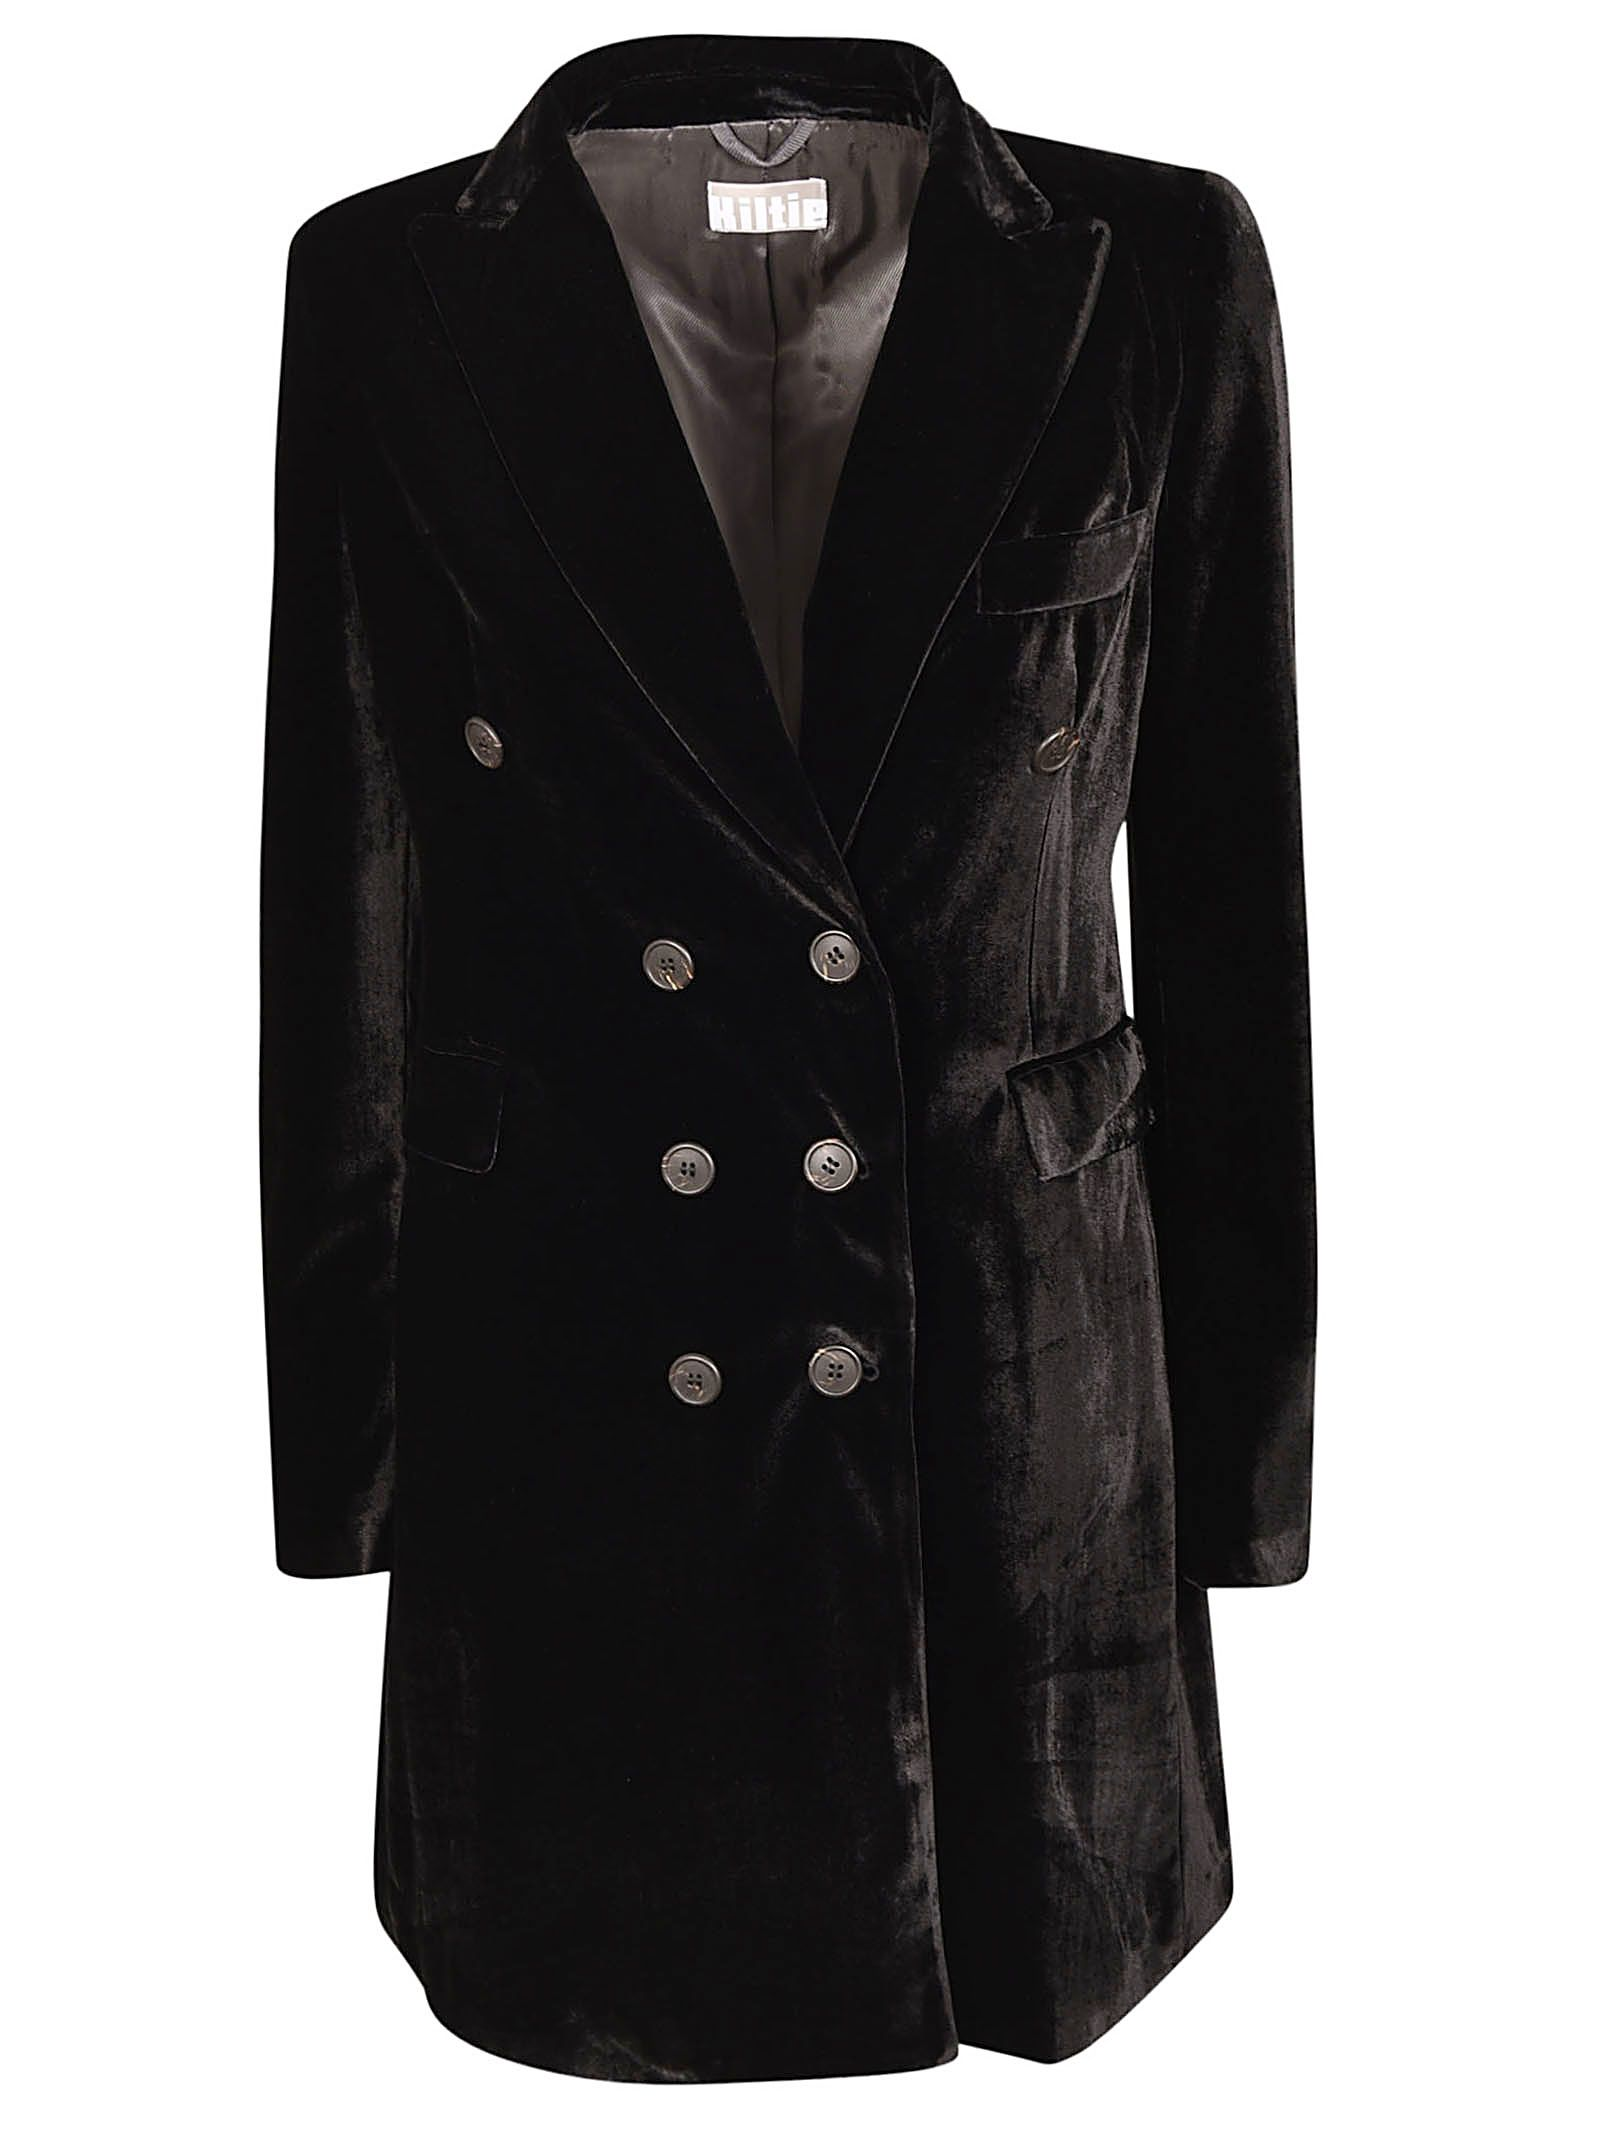 KILTIE & CO. Double Breasted Coat in Nero